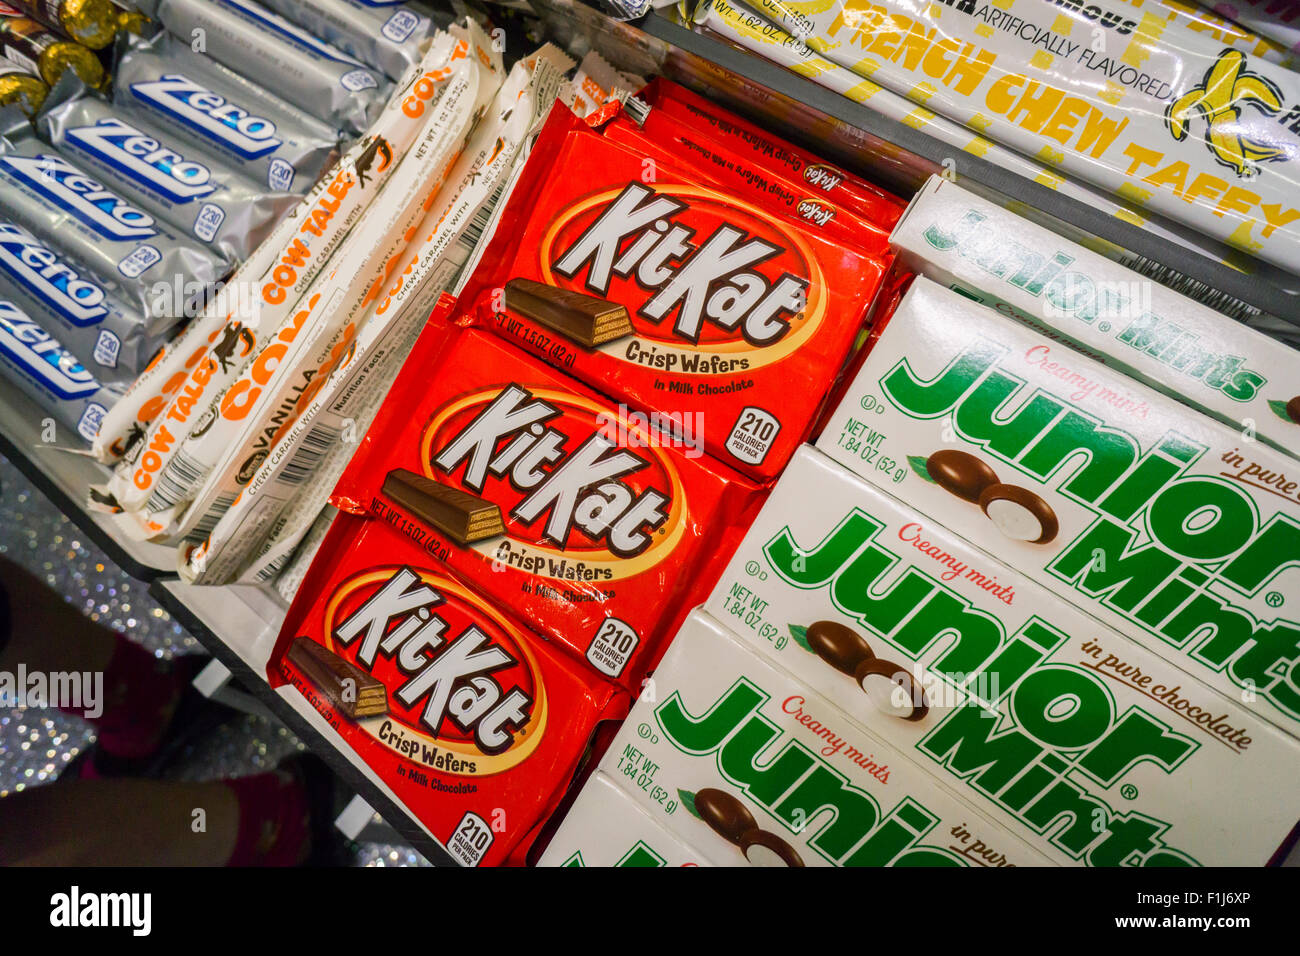 Nestlé's KitKat brand chocolate candy in a store in New York on Tuesday, September 1, 2015. KitKat announced - Stock Image